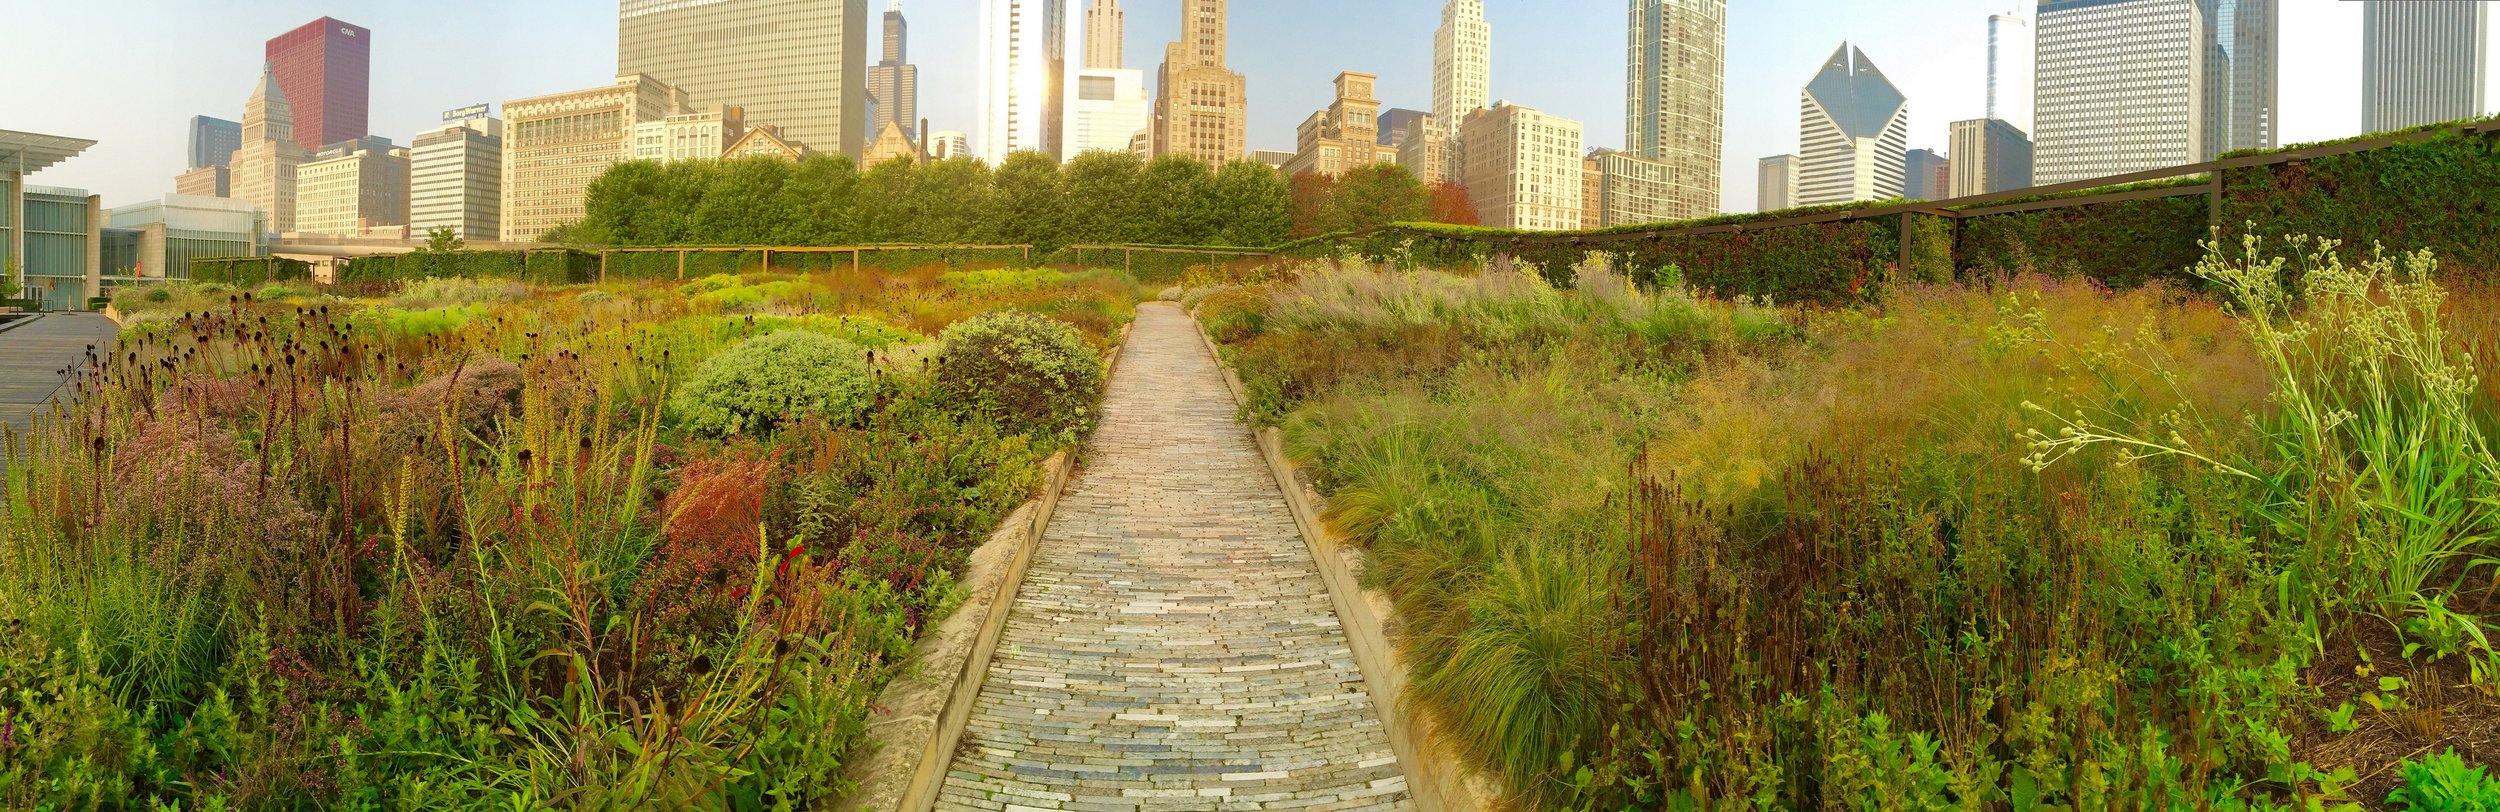 August at Lurie Garden